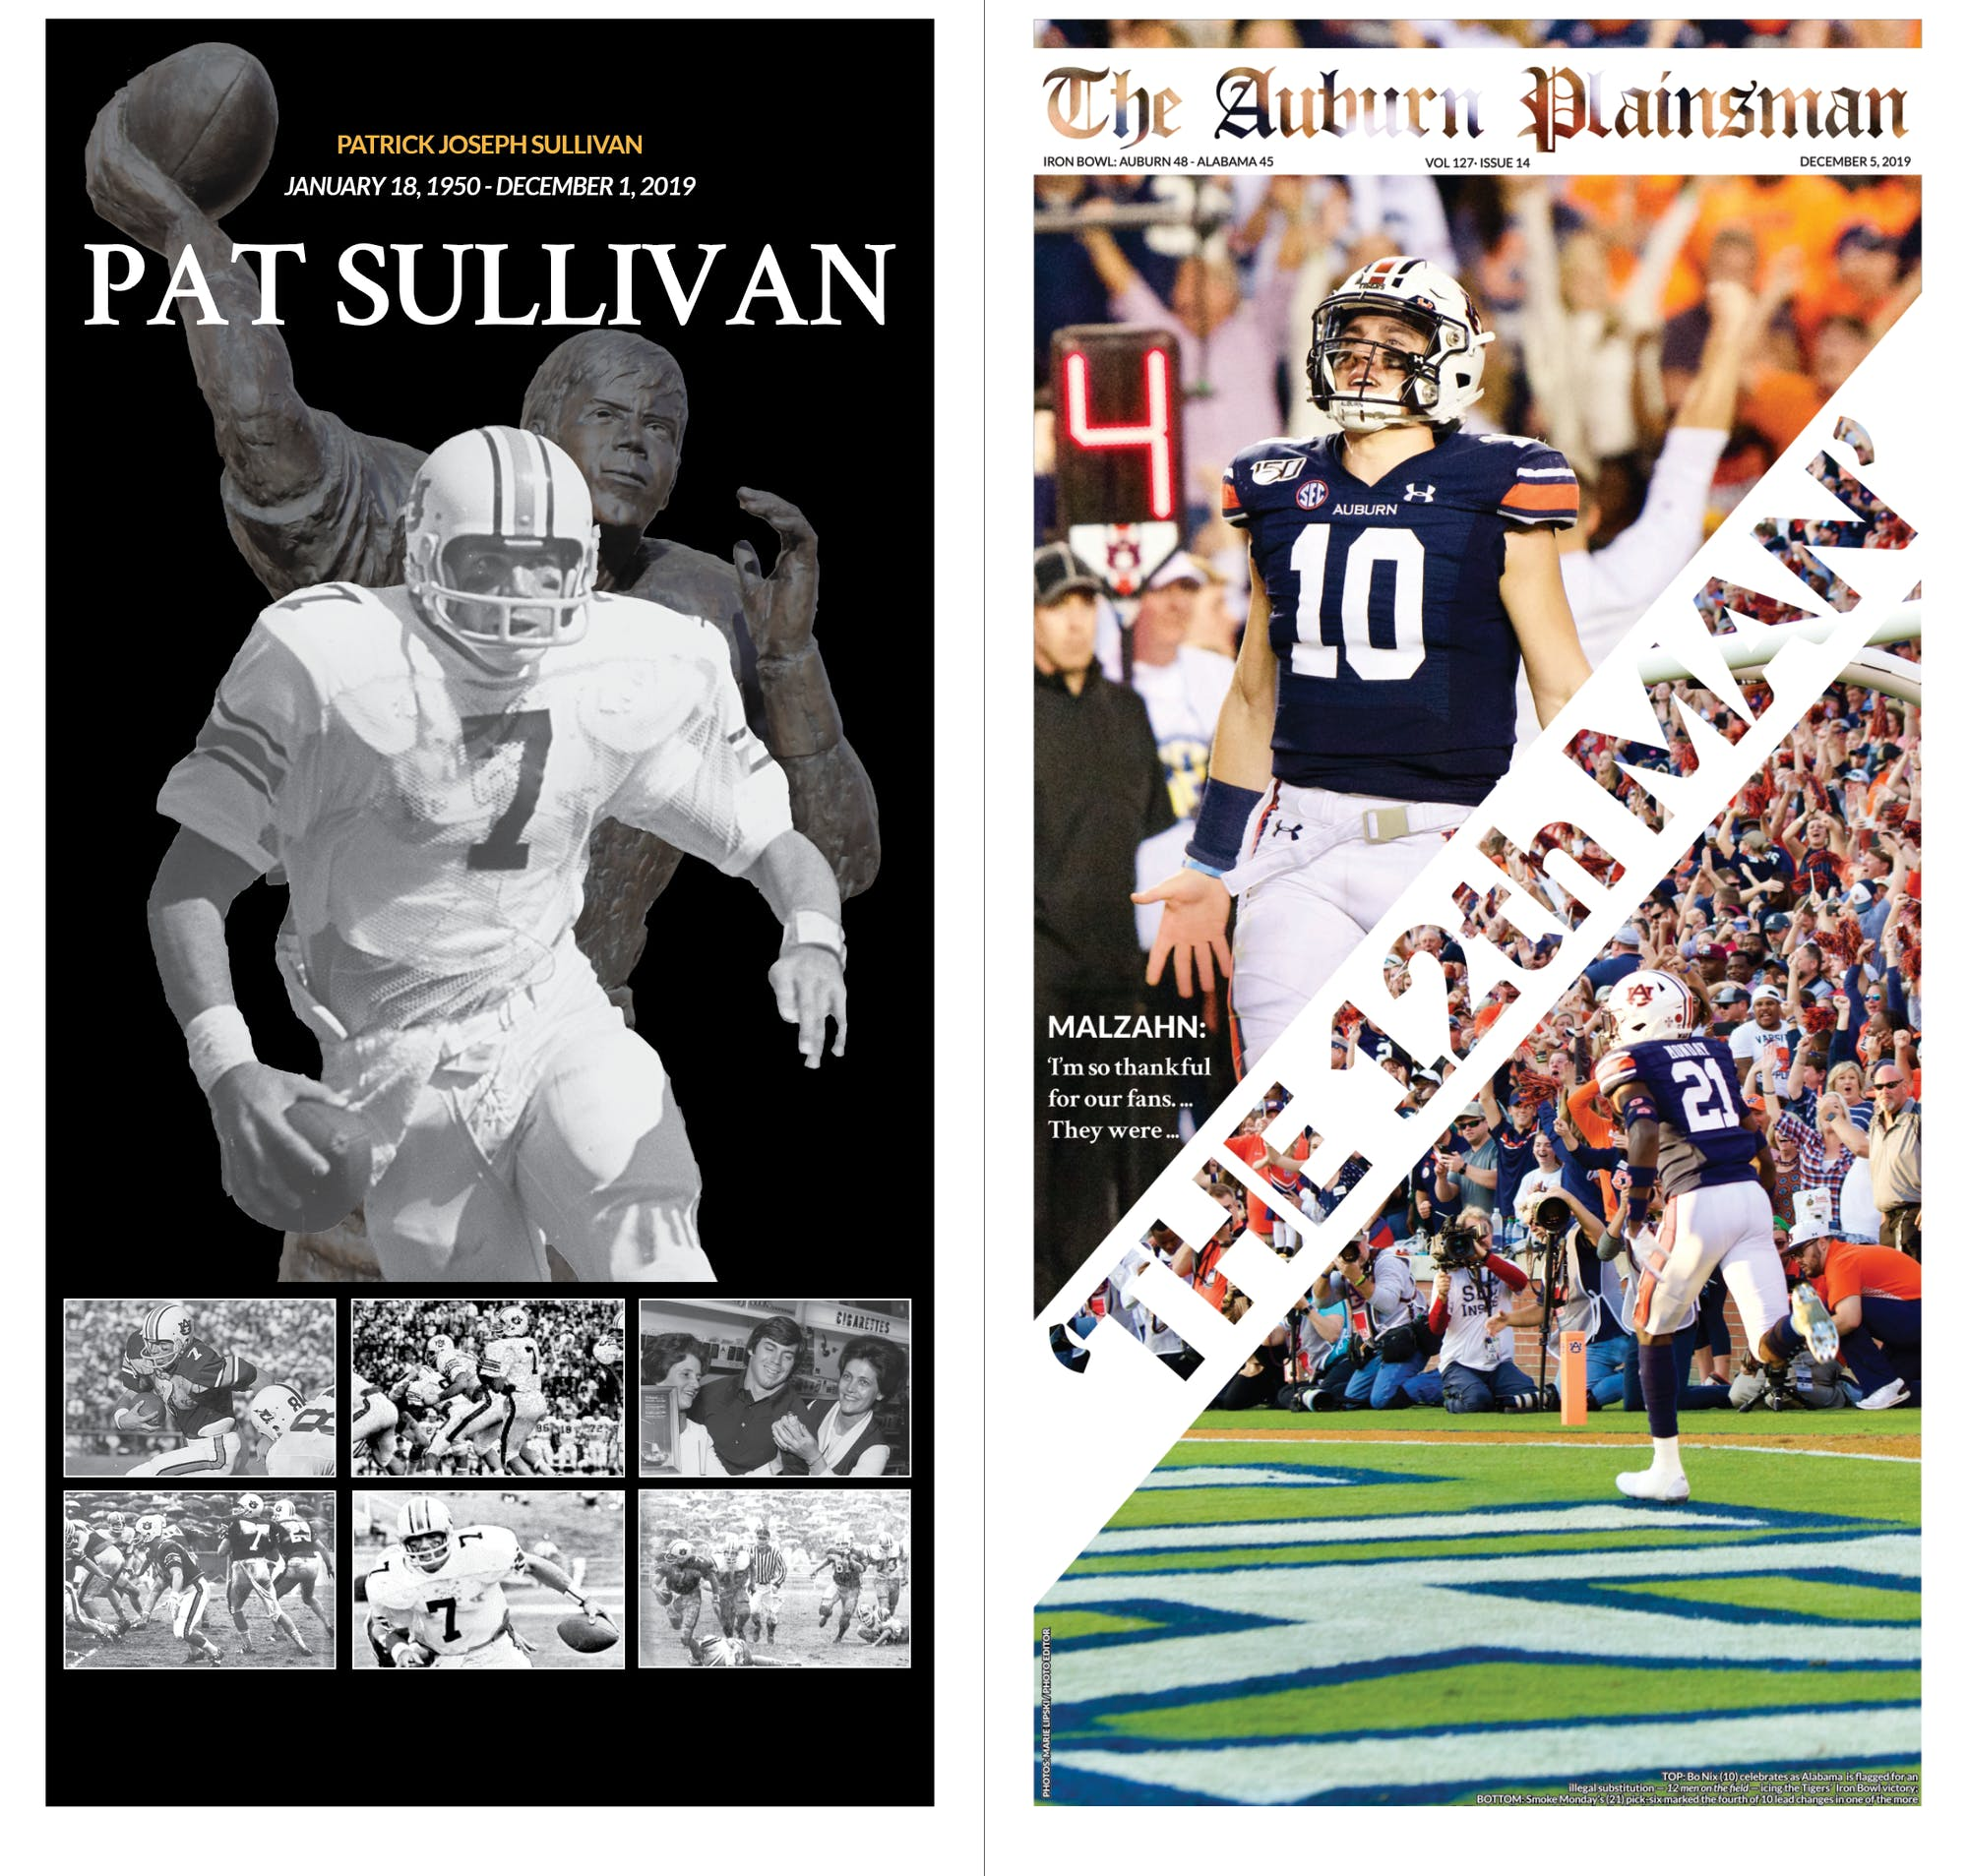 1*How to get a copy of The Plainsman's 2019 Iron Bowl and Pat Sullivan issue